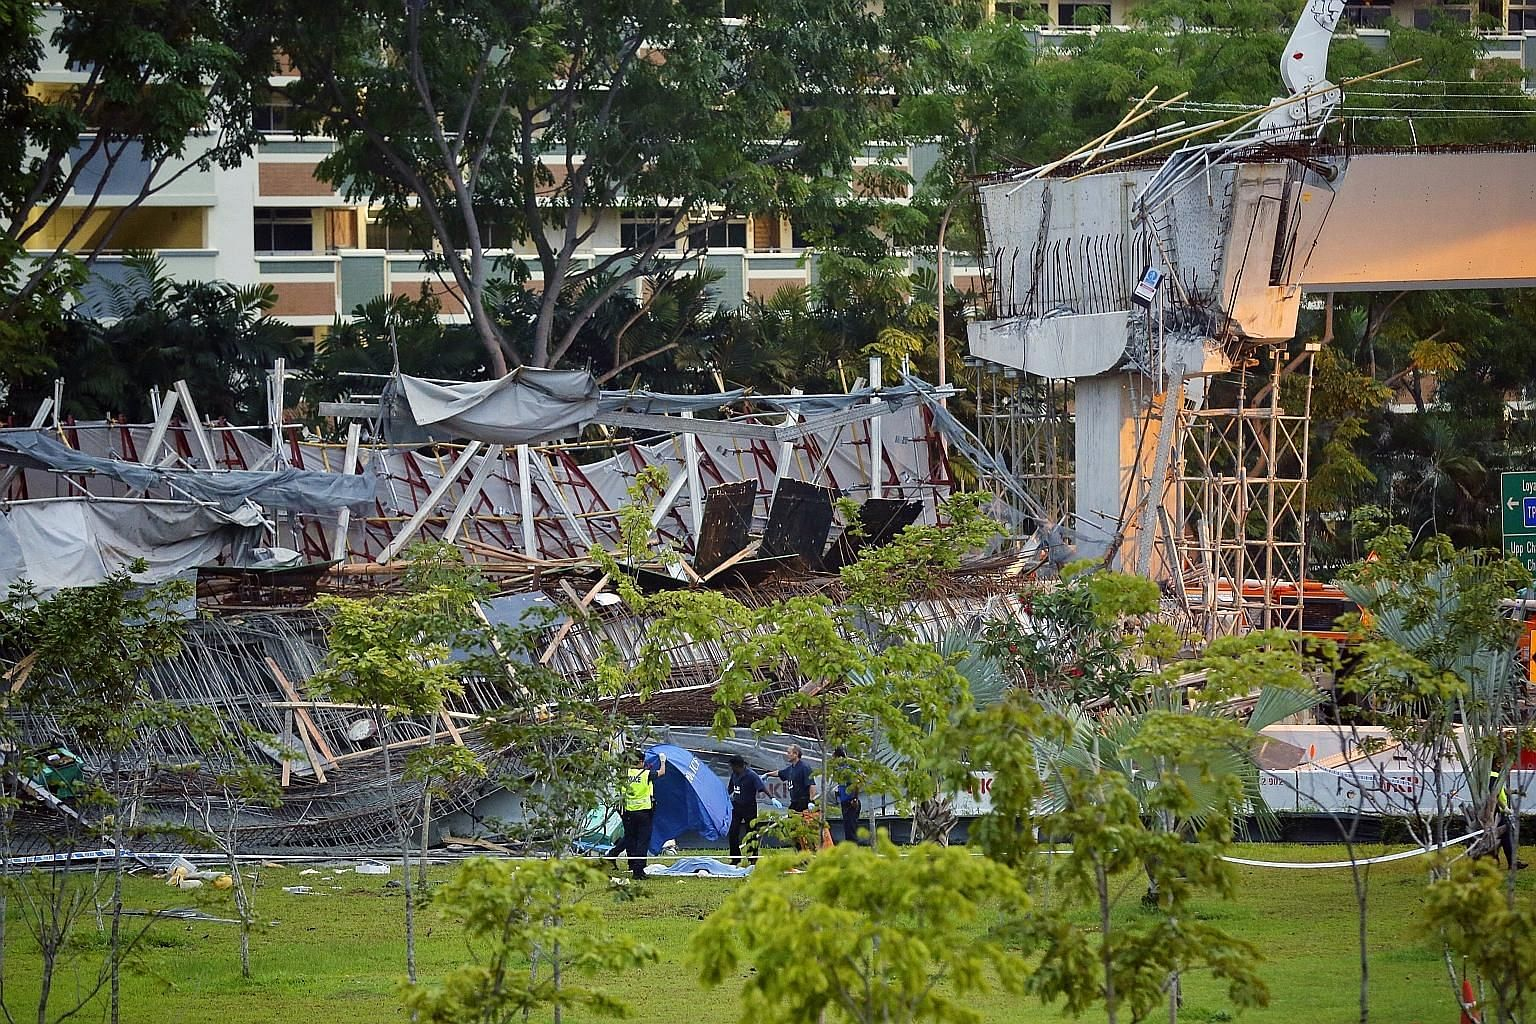 Mr Chen Yinchuan, 31, was killed when a section of the viaduct being constructed in Upper Changi Road East collapsed last Friday. Two of the 10 injured are still in critical condition, with hospital staff working to treat their most urgent injuries a